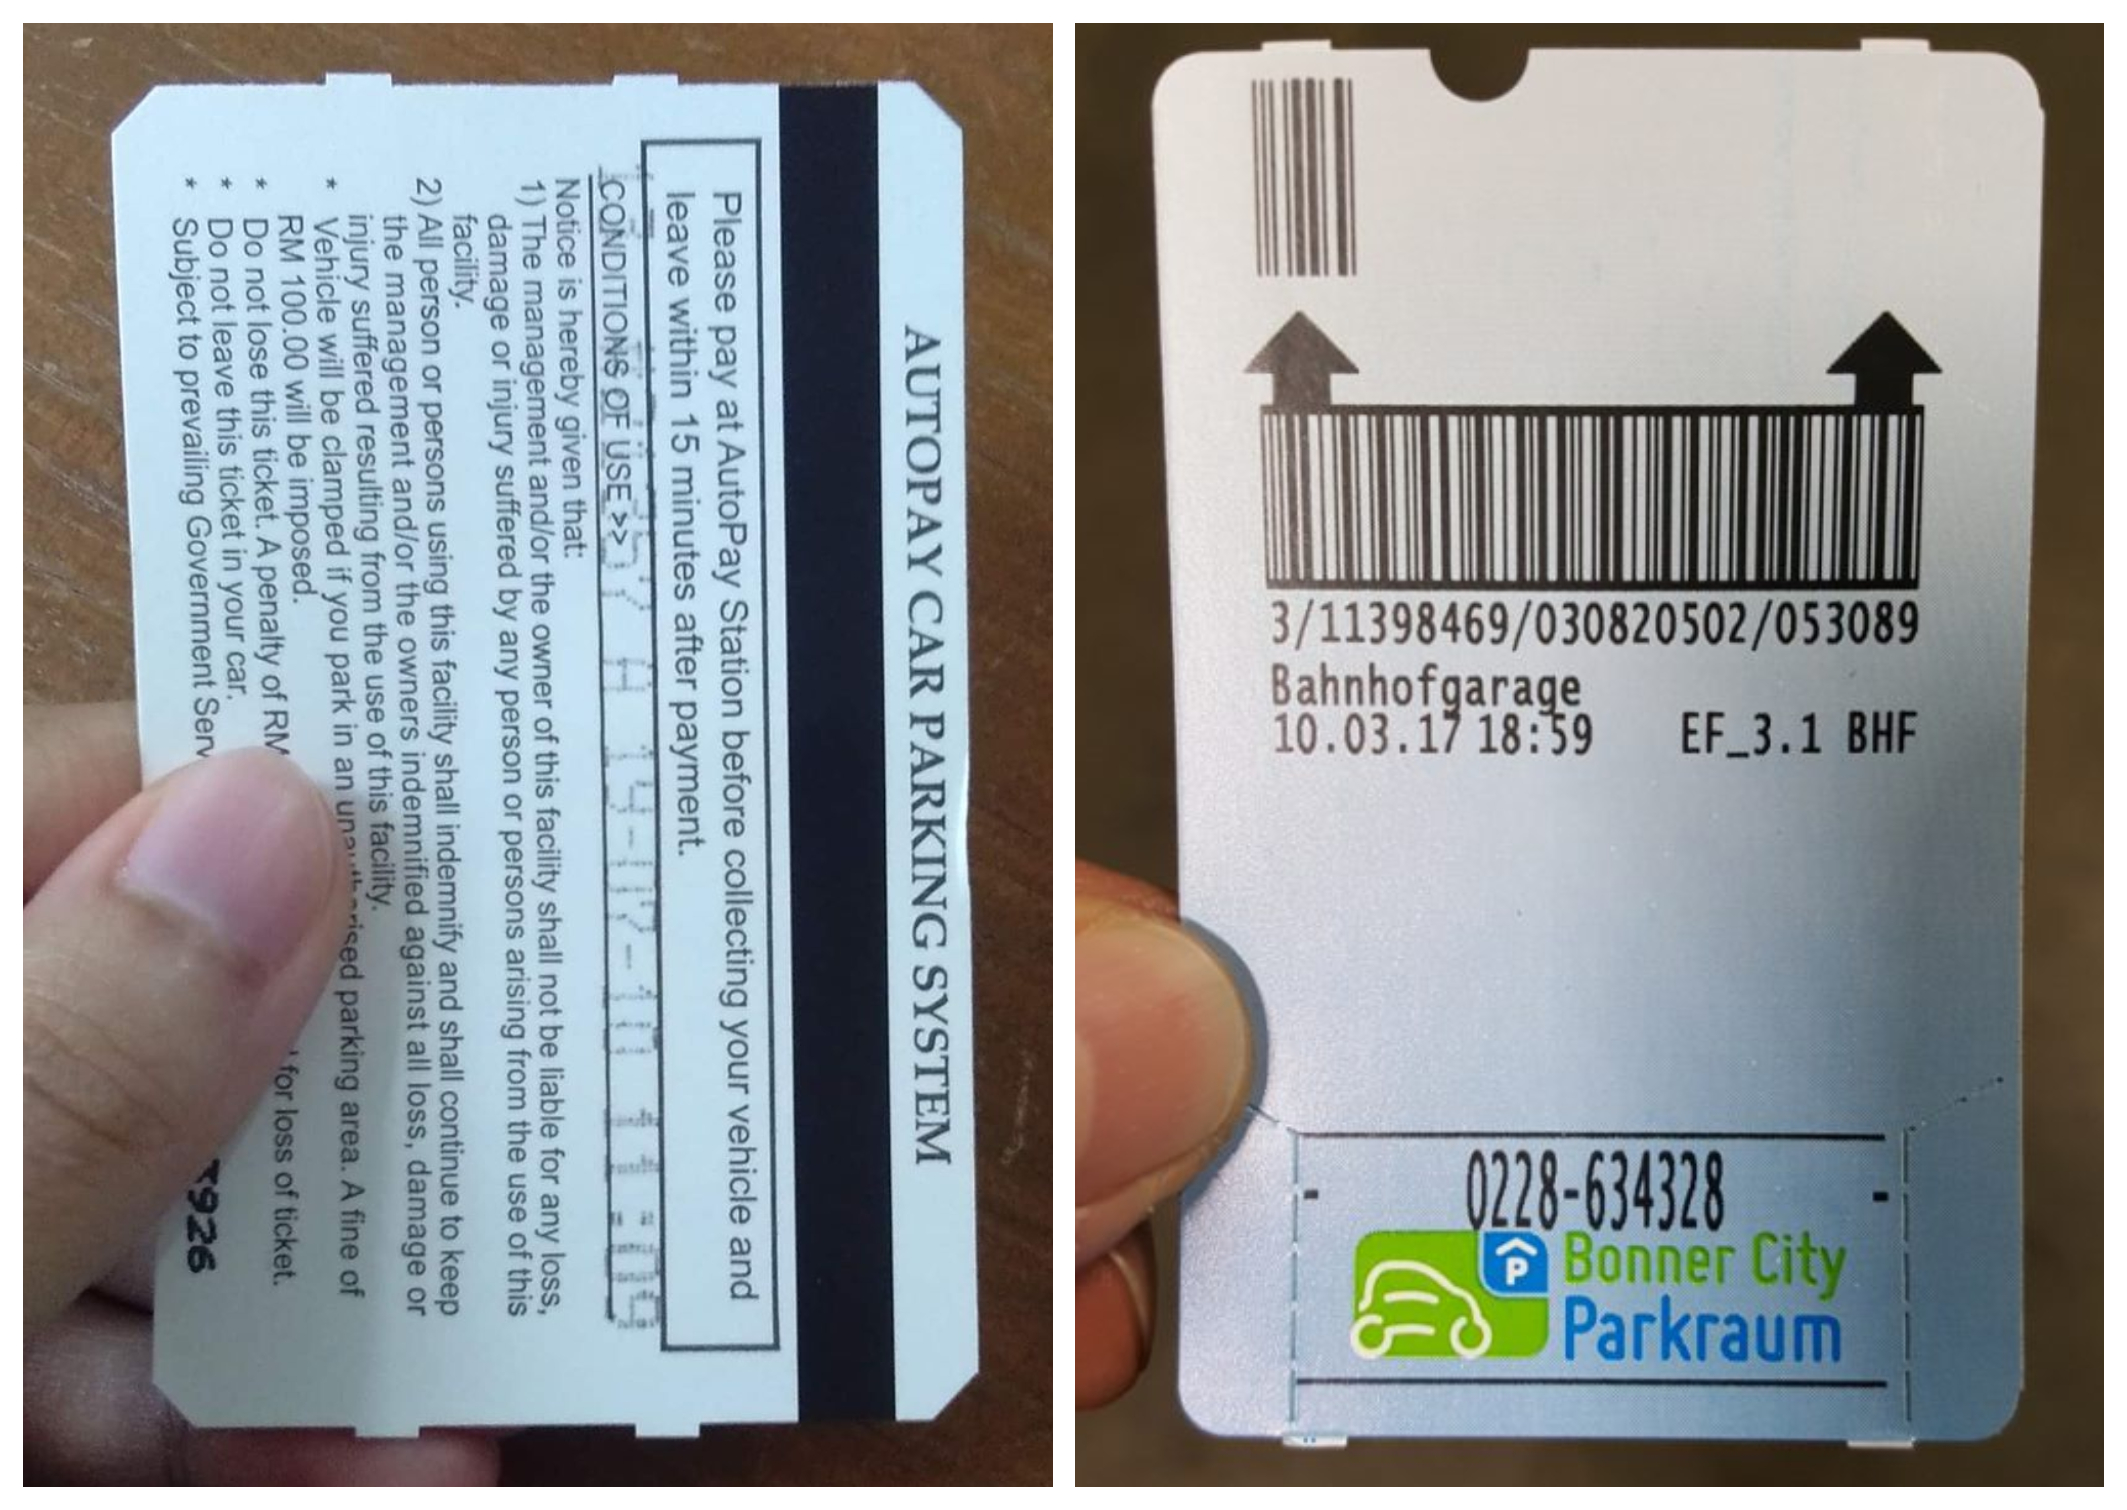 Magnetic Stripe (left) and Thermal Barcode (right). Img from Weber Packaging Solutions